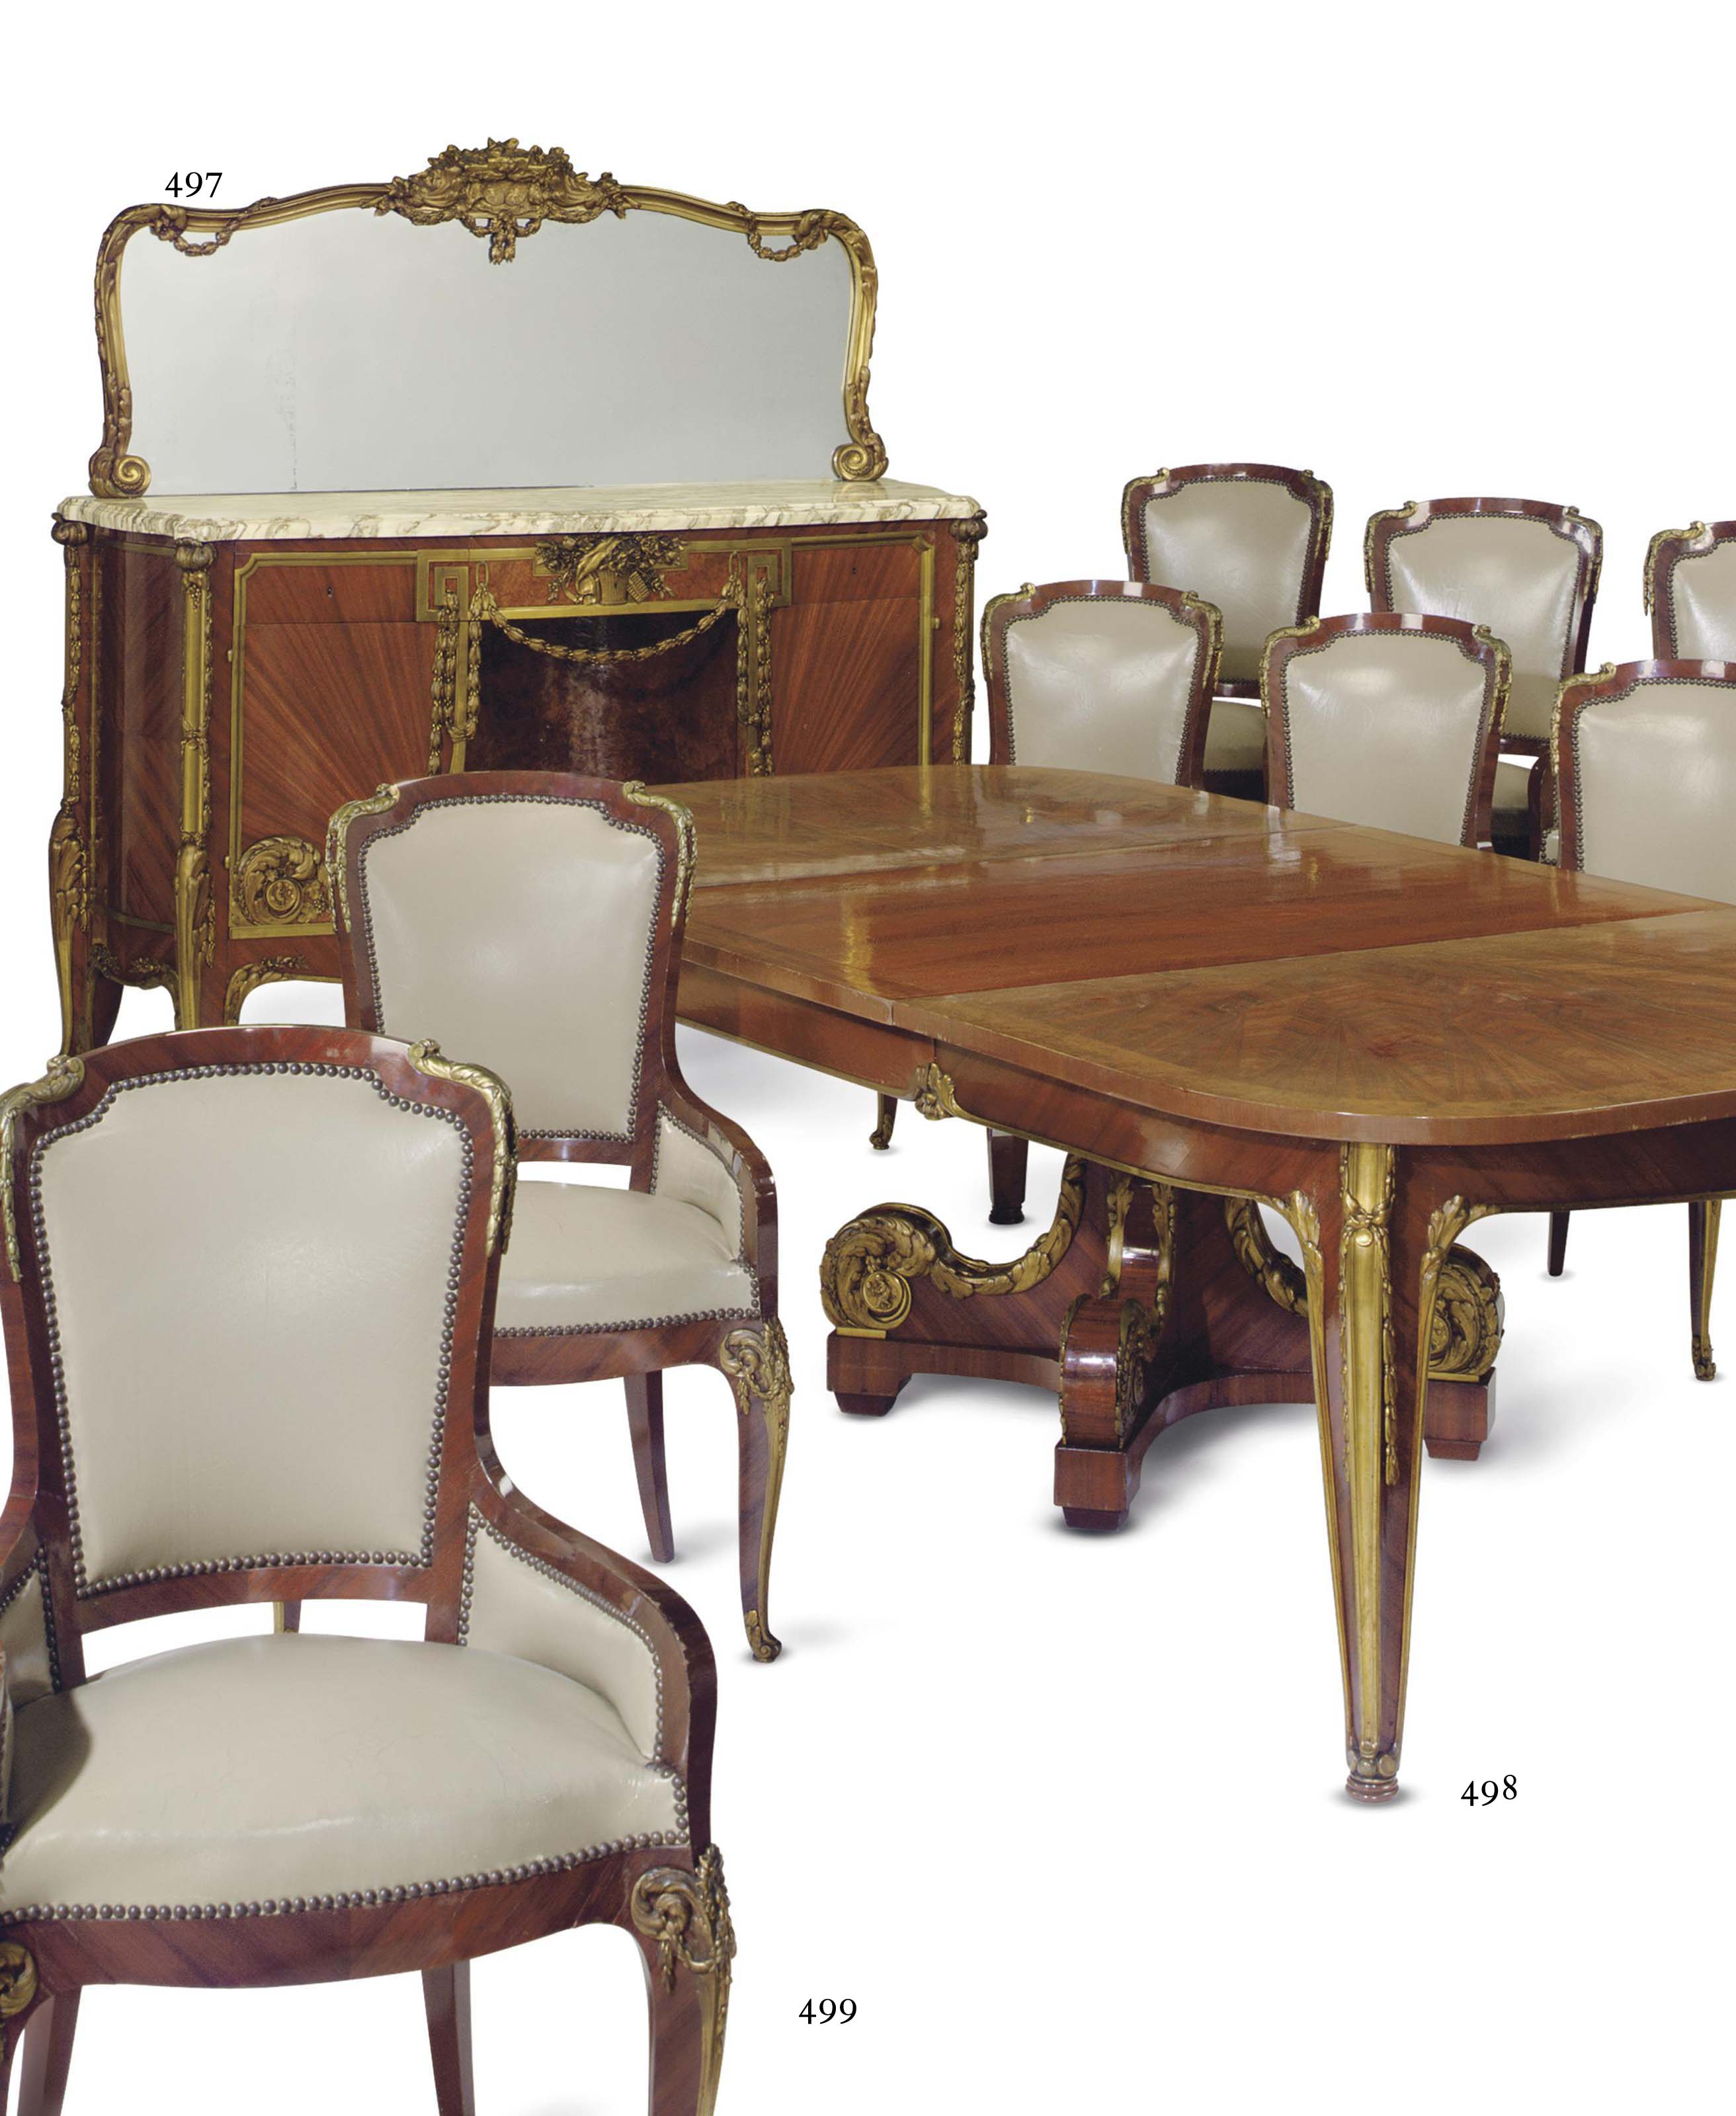 A FRENCH ORMOLU-MOUNTED SATINE AND AMBOYNA BUFFET AND MIRROR